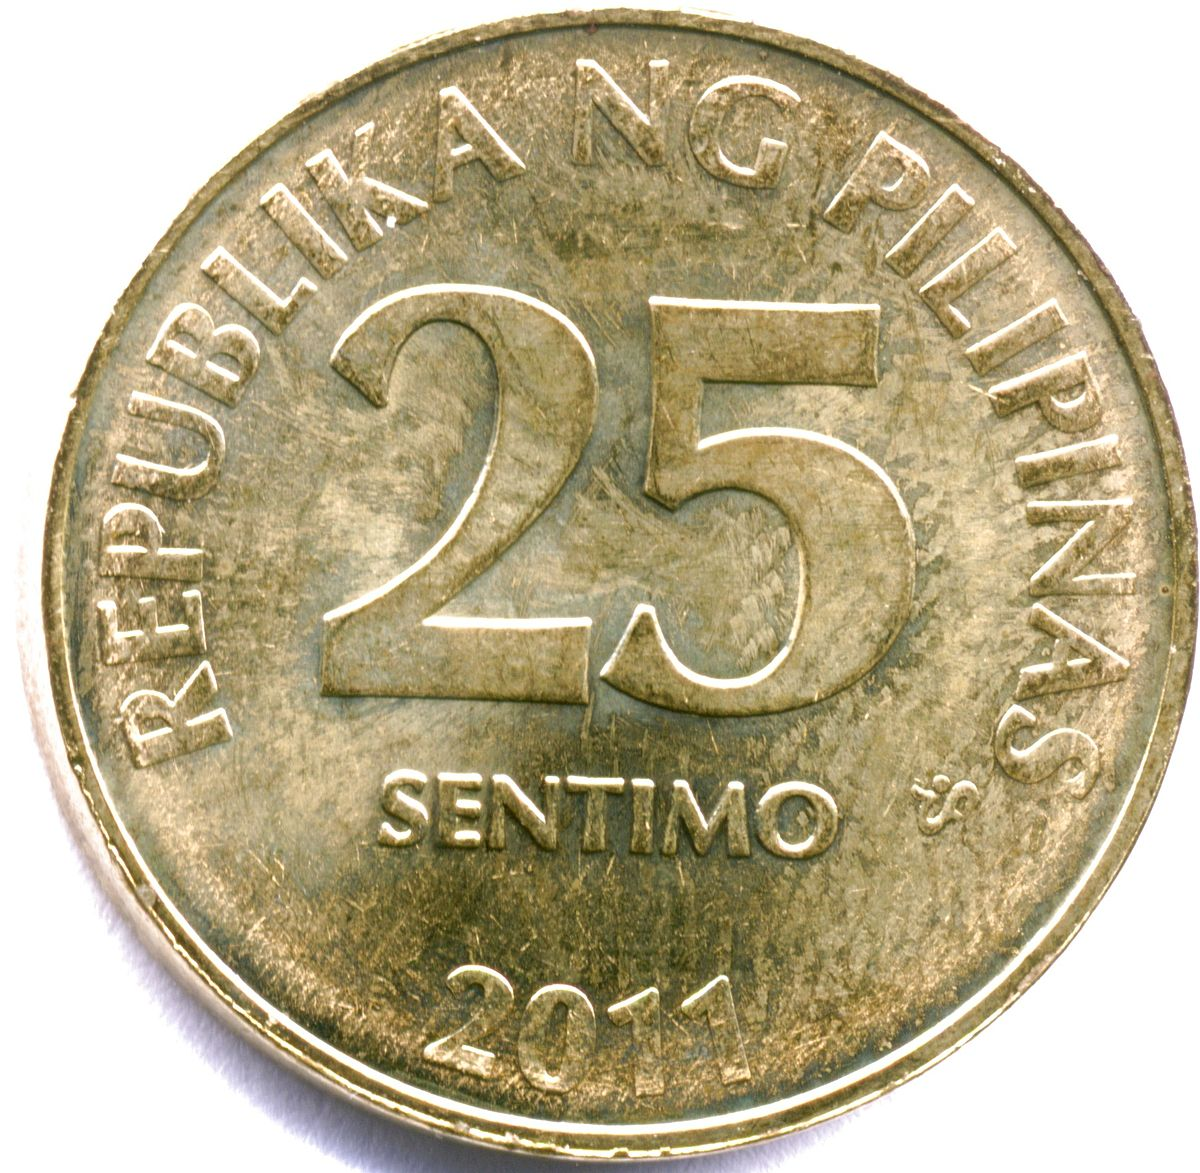 Coin Ph: Philippine Twenty-five Centavo Coin